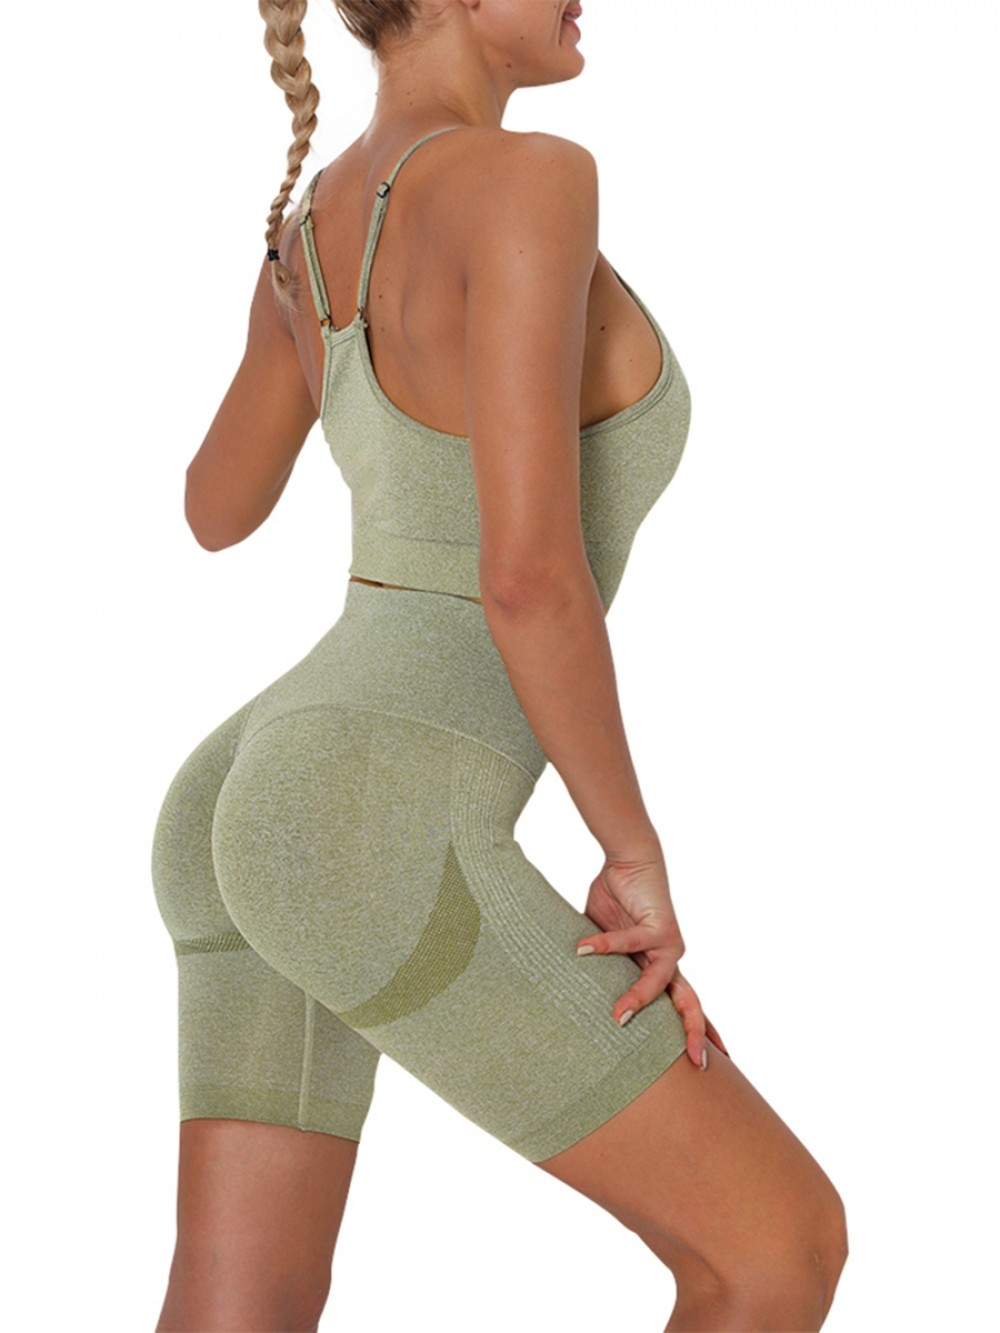 Army Green Thigh Length Seamless Ruched Yoga Suit Preventing Sweat